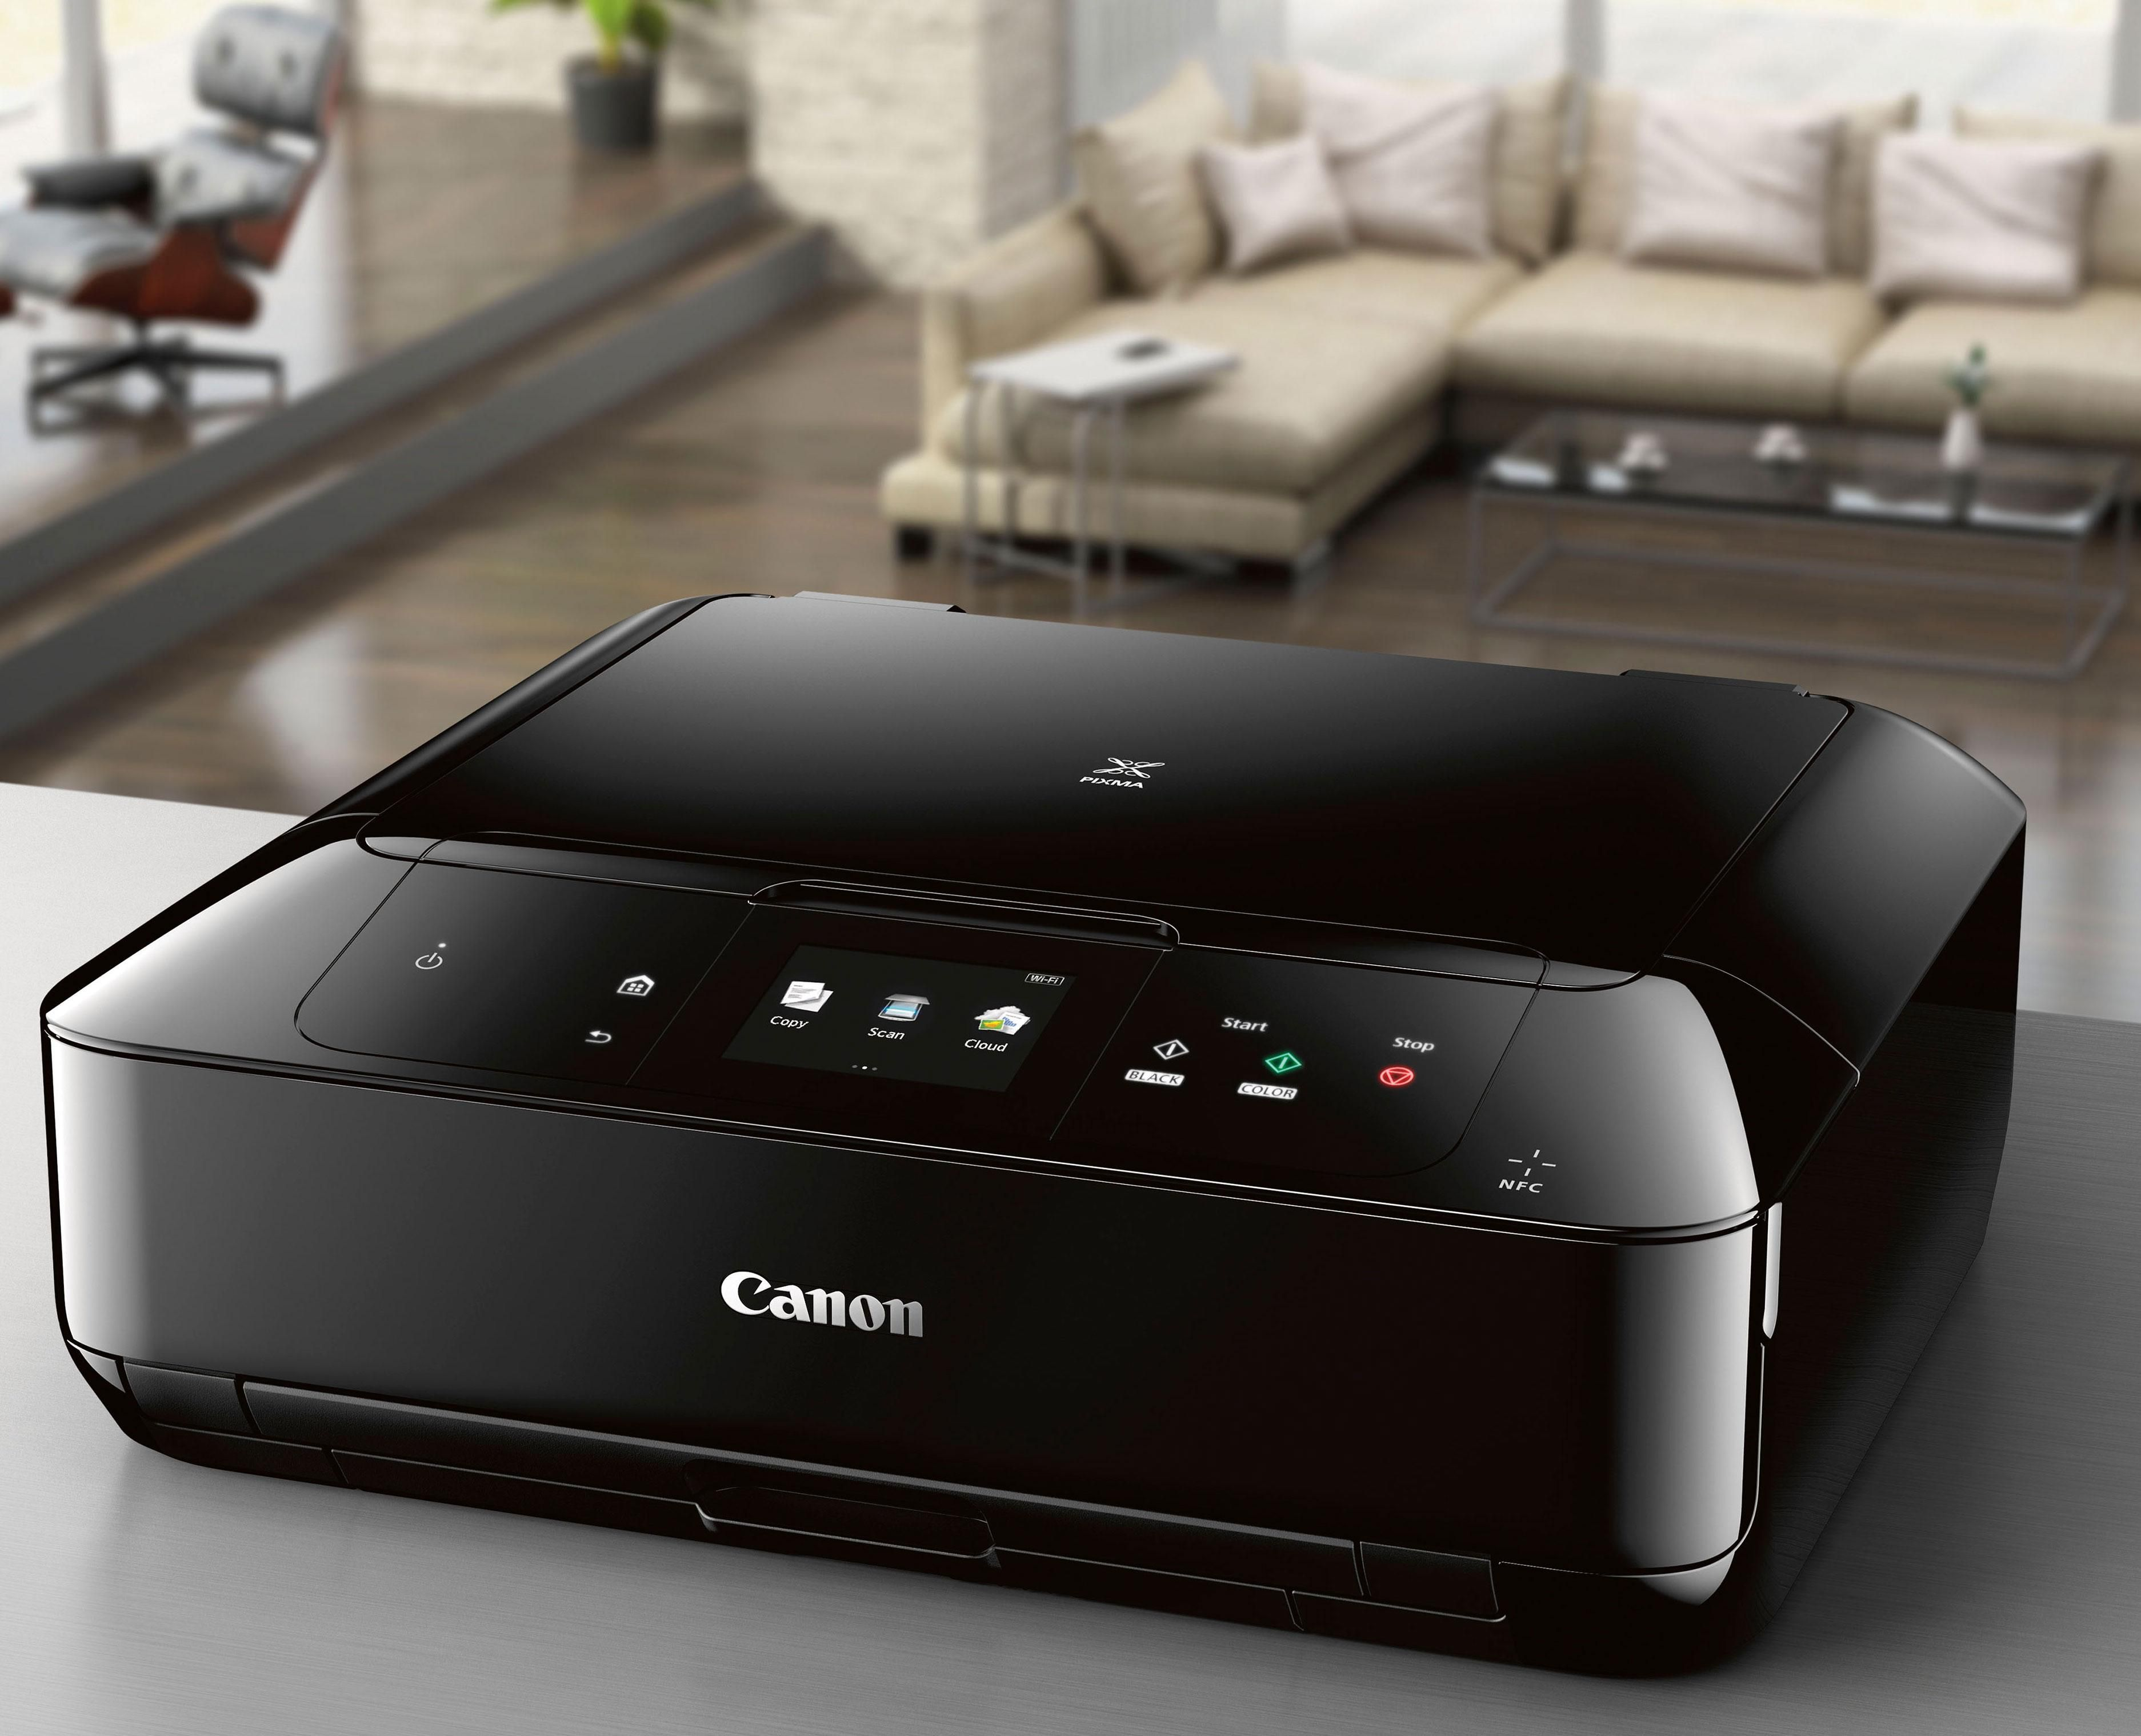 Amazon.com: Canon MG7720 Wireless All-In-One Printer with Scanner and Copier: Mobile and Tablet Printing, with Airprint(TM) and Google Cloud Print compatible, Black: Electronics